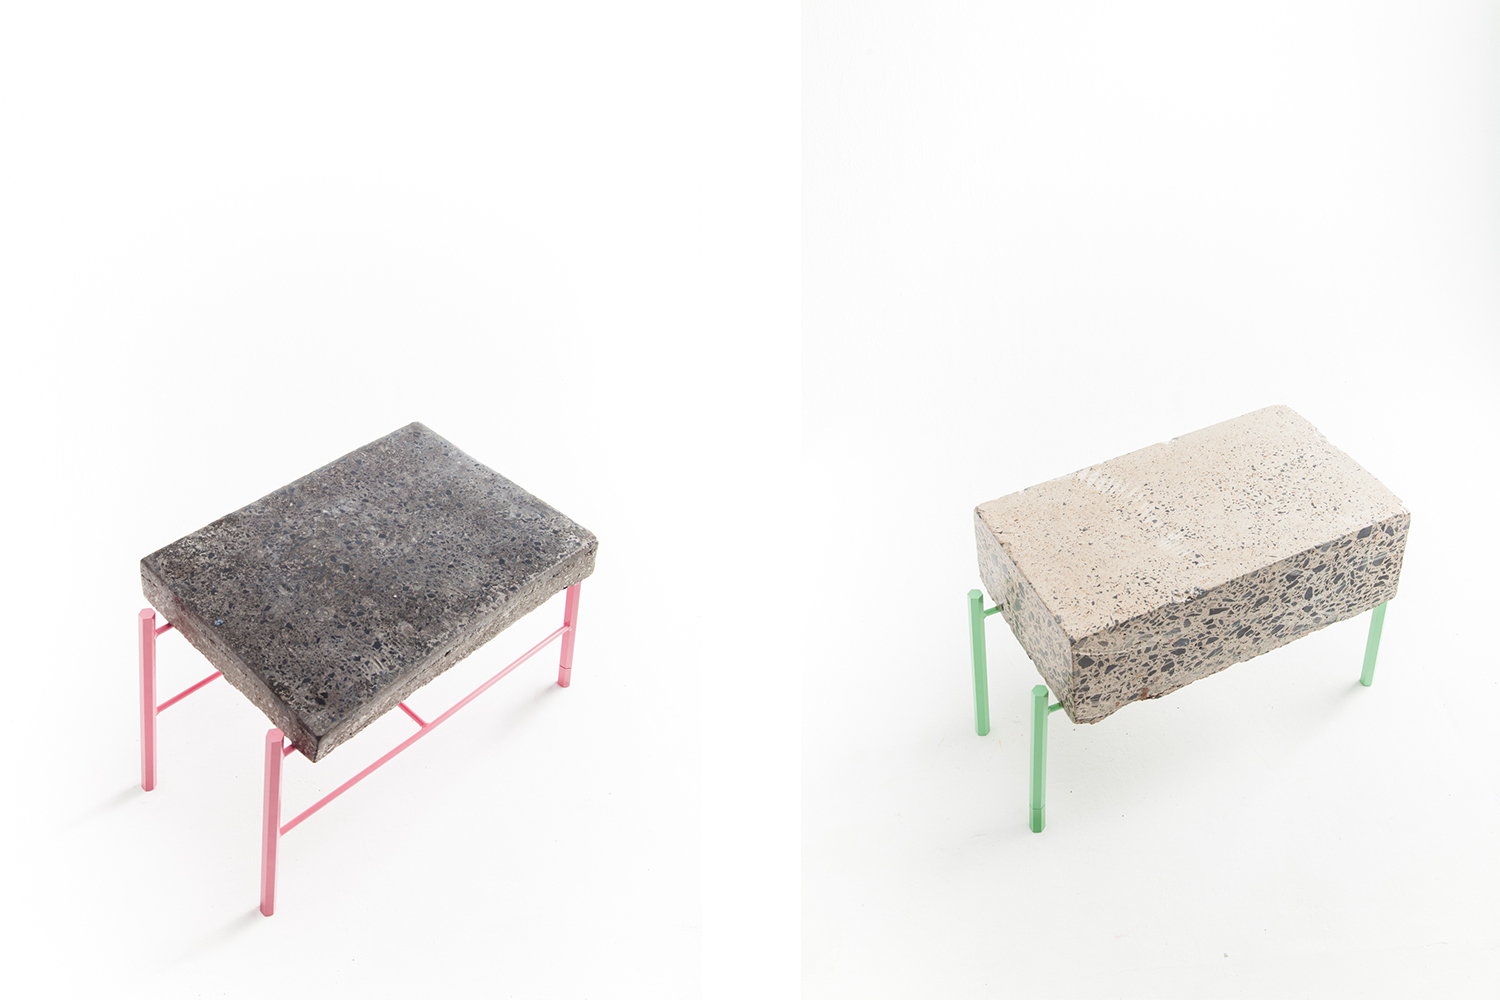 Coffee table made of scrap concrete or recycled asphalt. Metal frame made to measure, light and bright color. Legs made of mint green or pink hexagonal metal rods